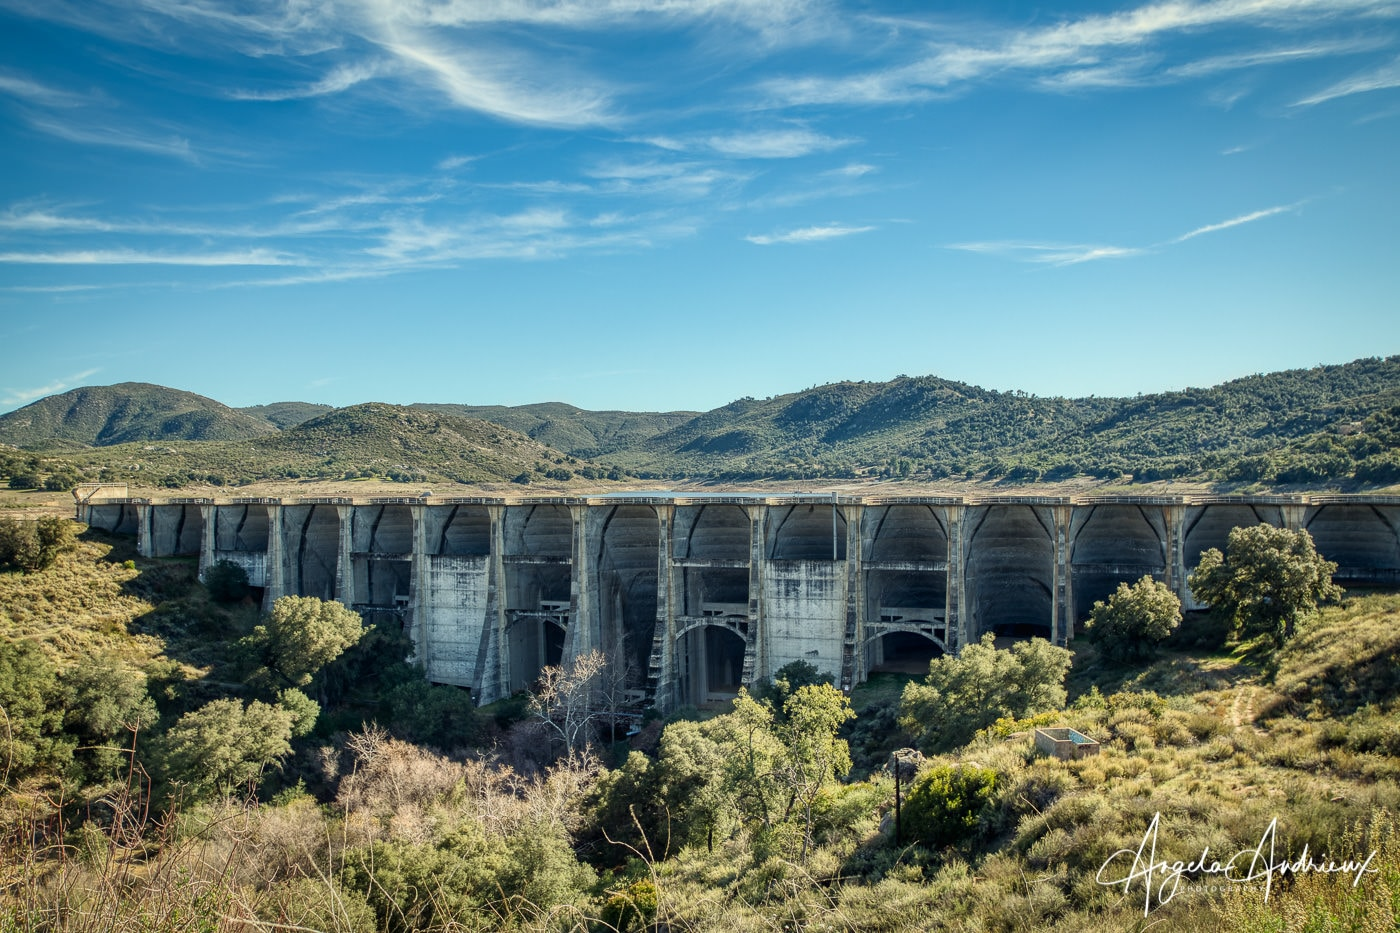 Sutherland Dam in Ramona, California